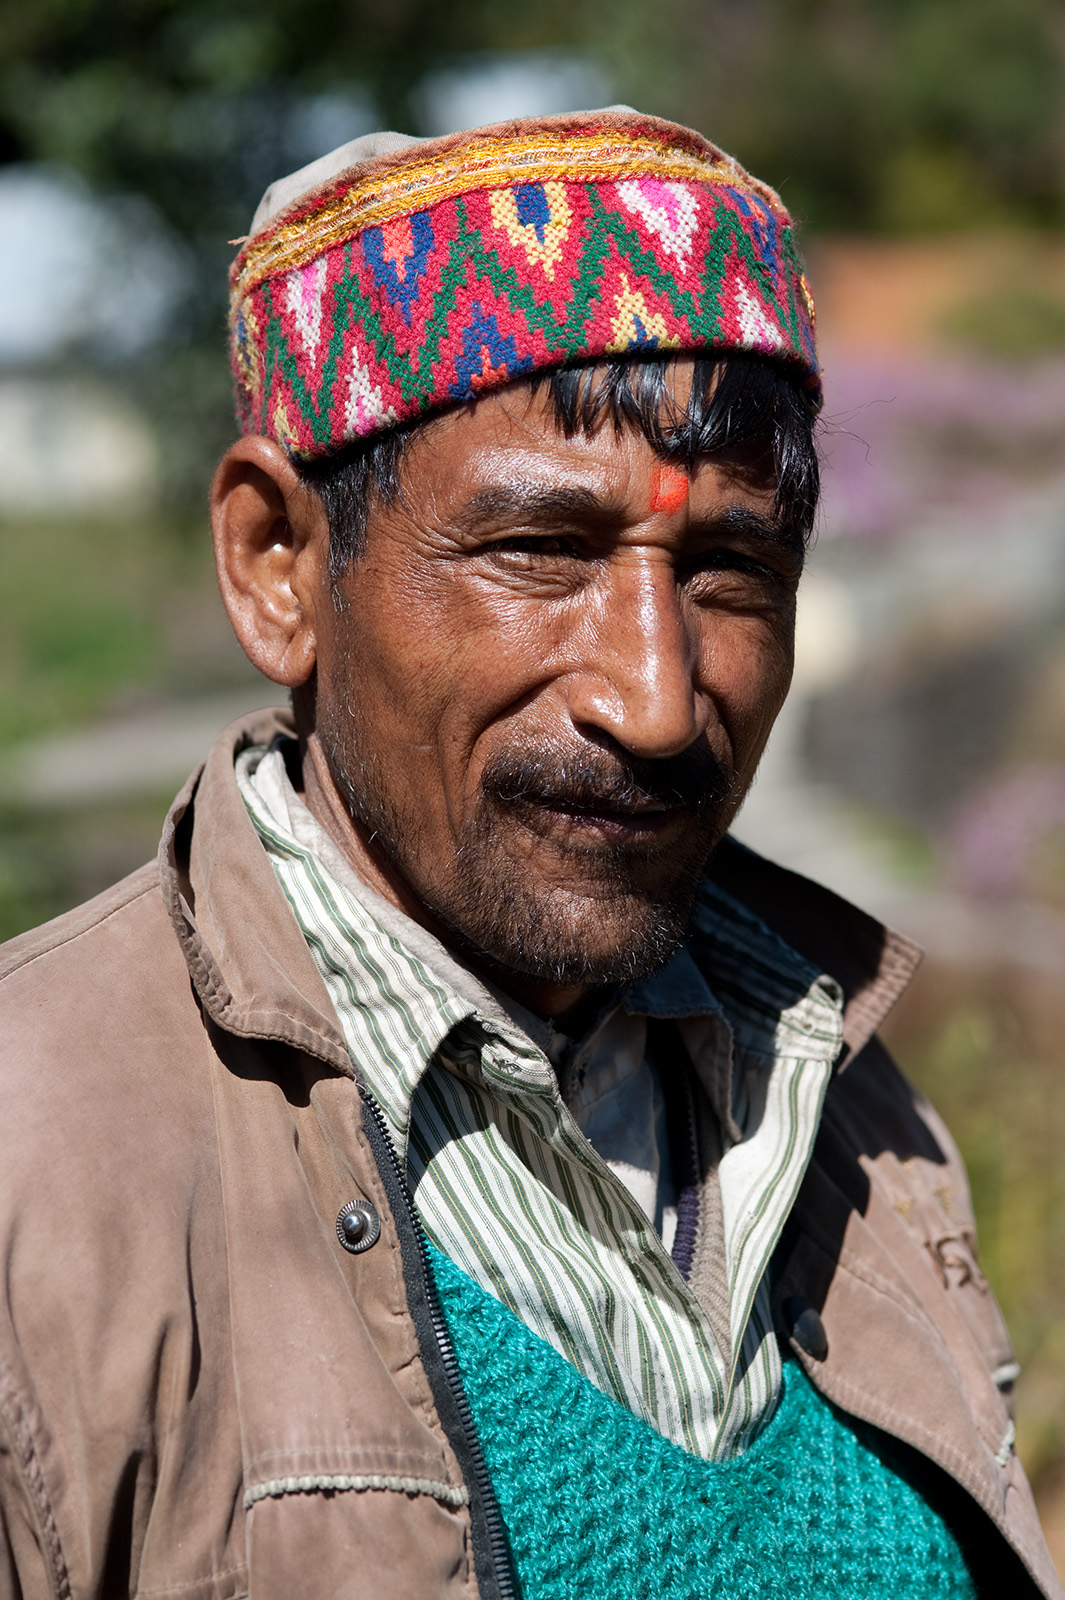 Portraits,  on the way to Rees, Uttarakhand, India. Trek Day 21